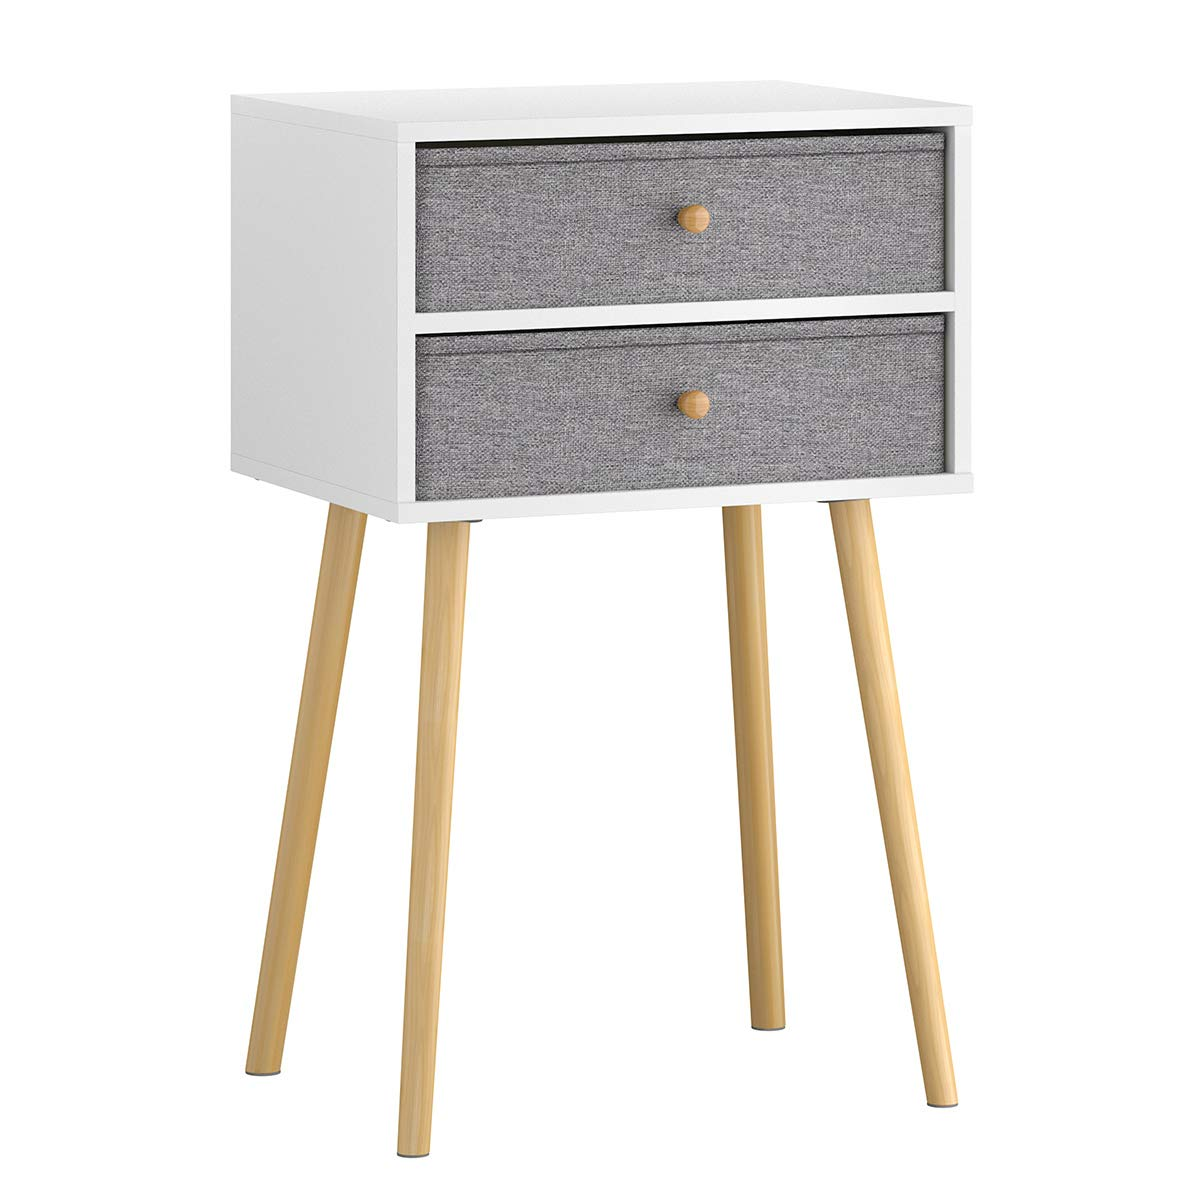 LANGRIA Bedside Table Nightstand End Table with Fabric Storage Drawer Pine Wooden Table for Bedroom Study and Fashion 15.7 x 11.7 x 22.4 inches (Grey) by LANGRIA